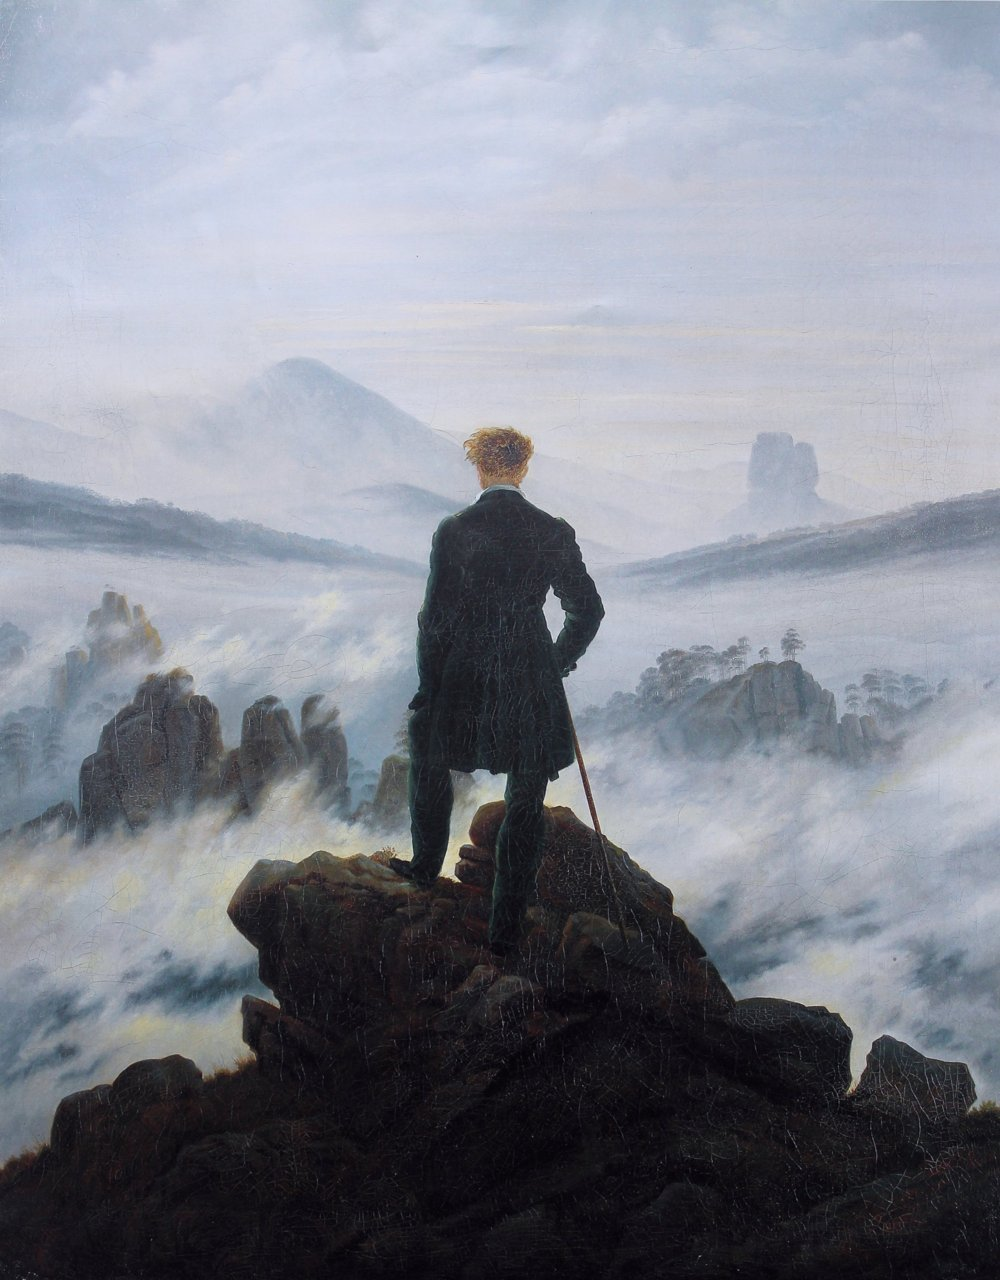 Caspar David Friedrich: The Wanderer above the Mists, 1817-18. Oil on Canvas.